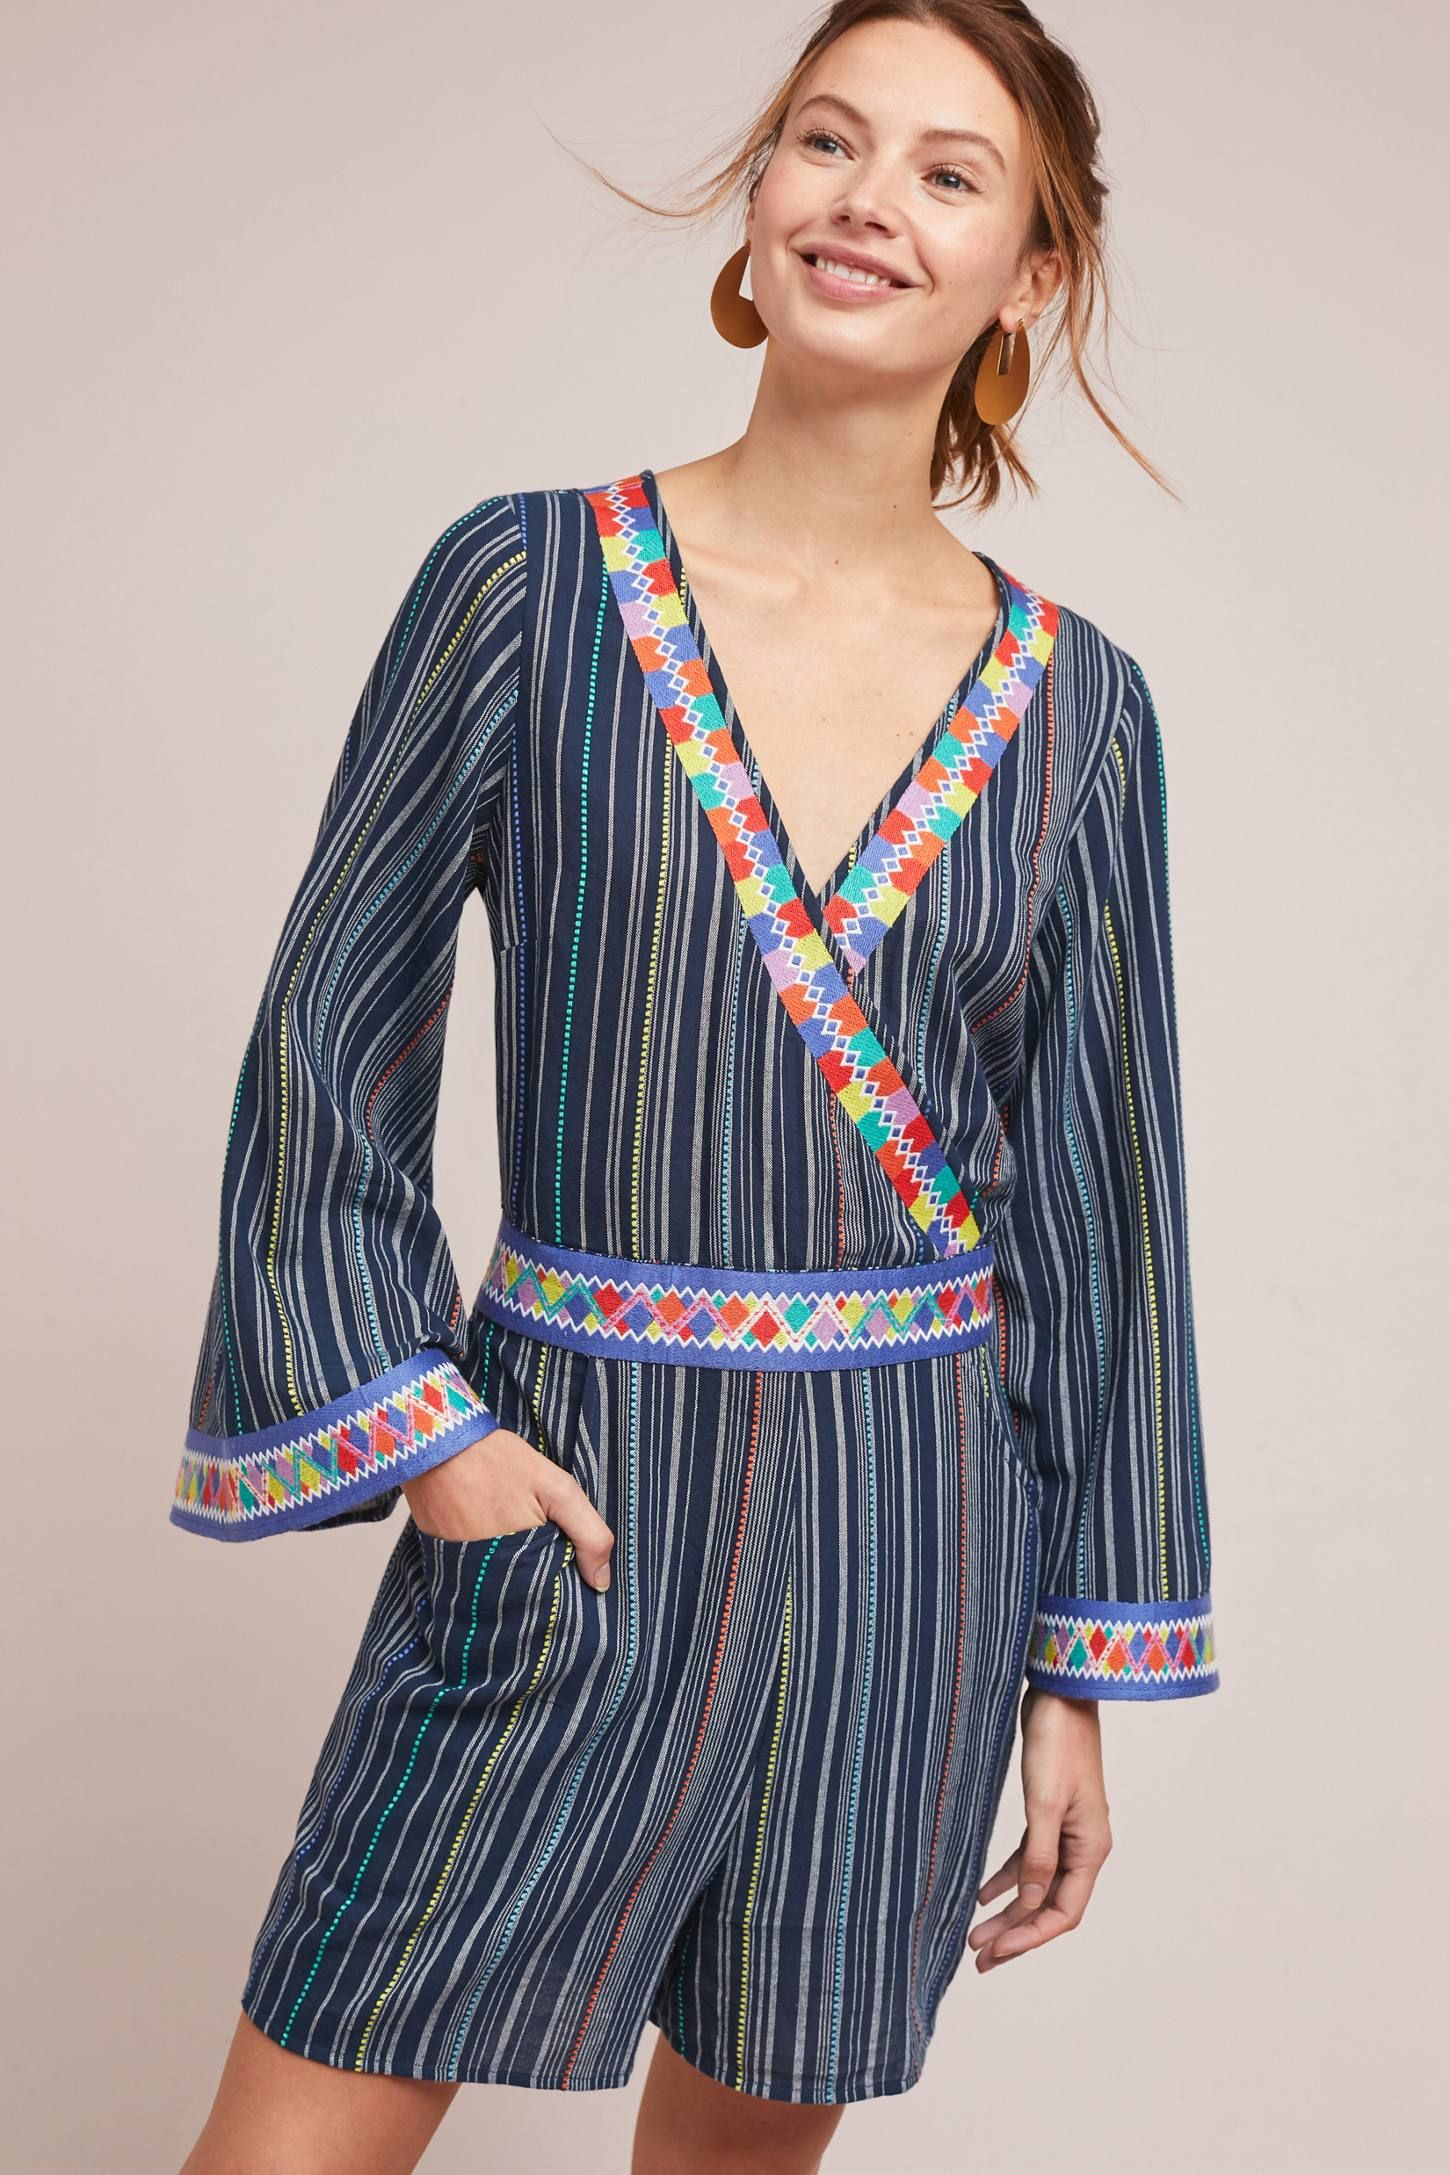 5a34526540f9 Nantucket Striped Romper in 2019 | LAIA | Rompers, Dresses, Nantucket